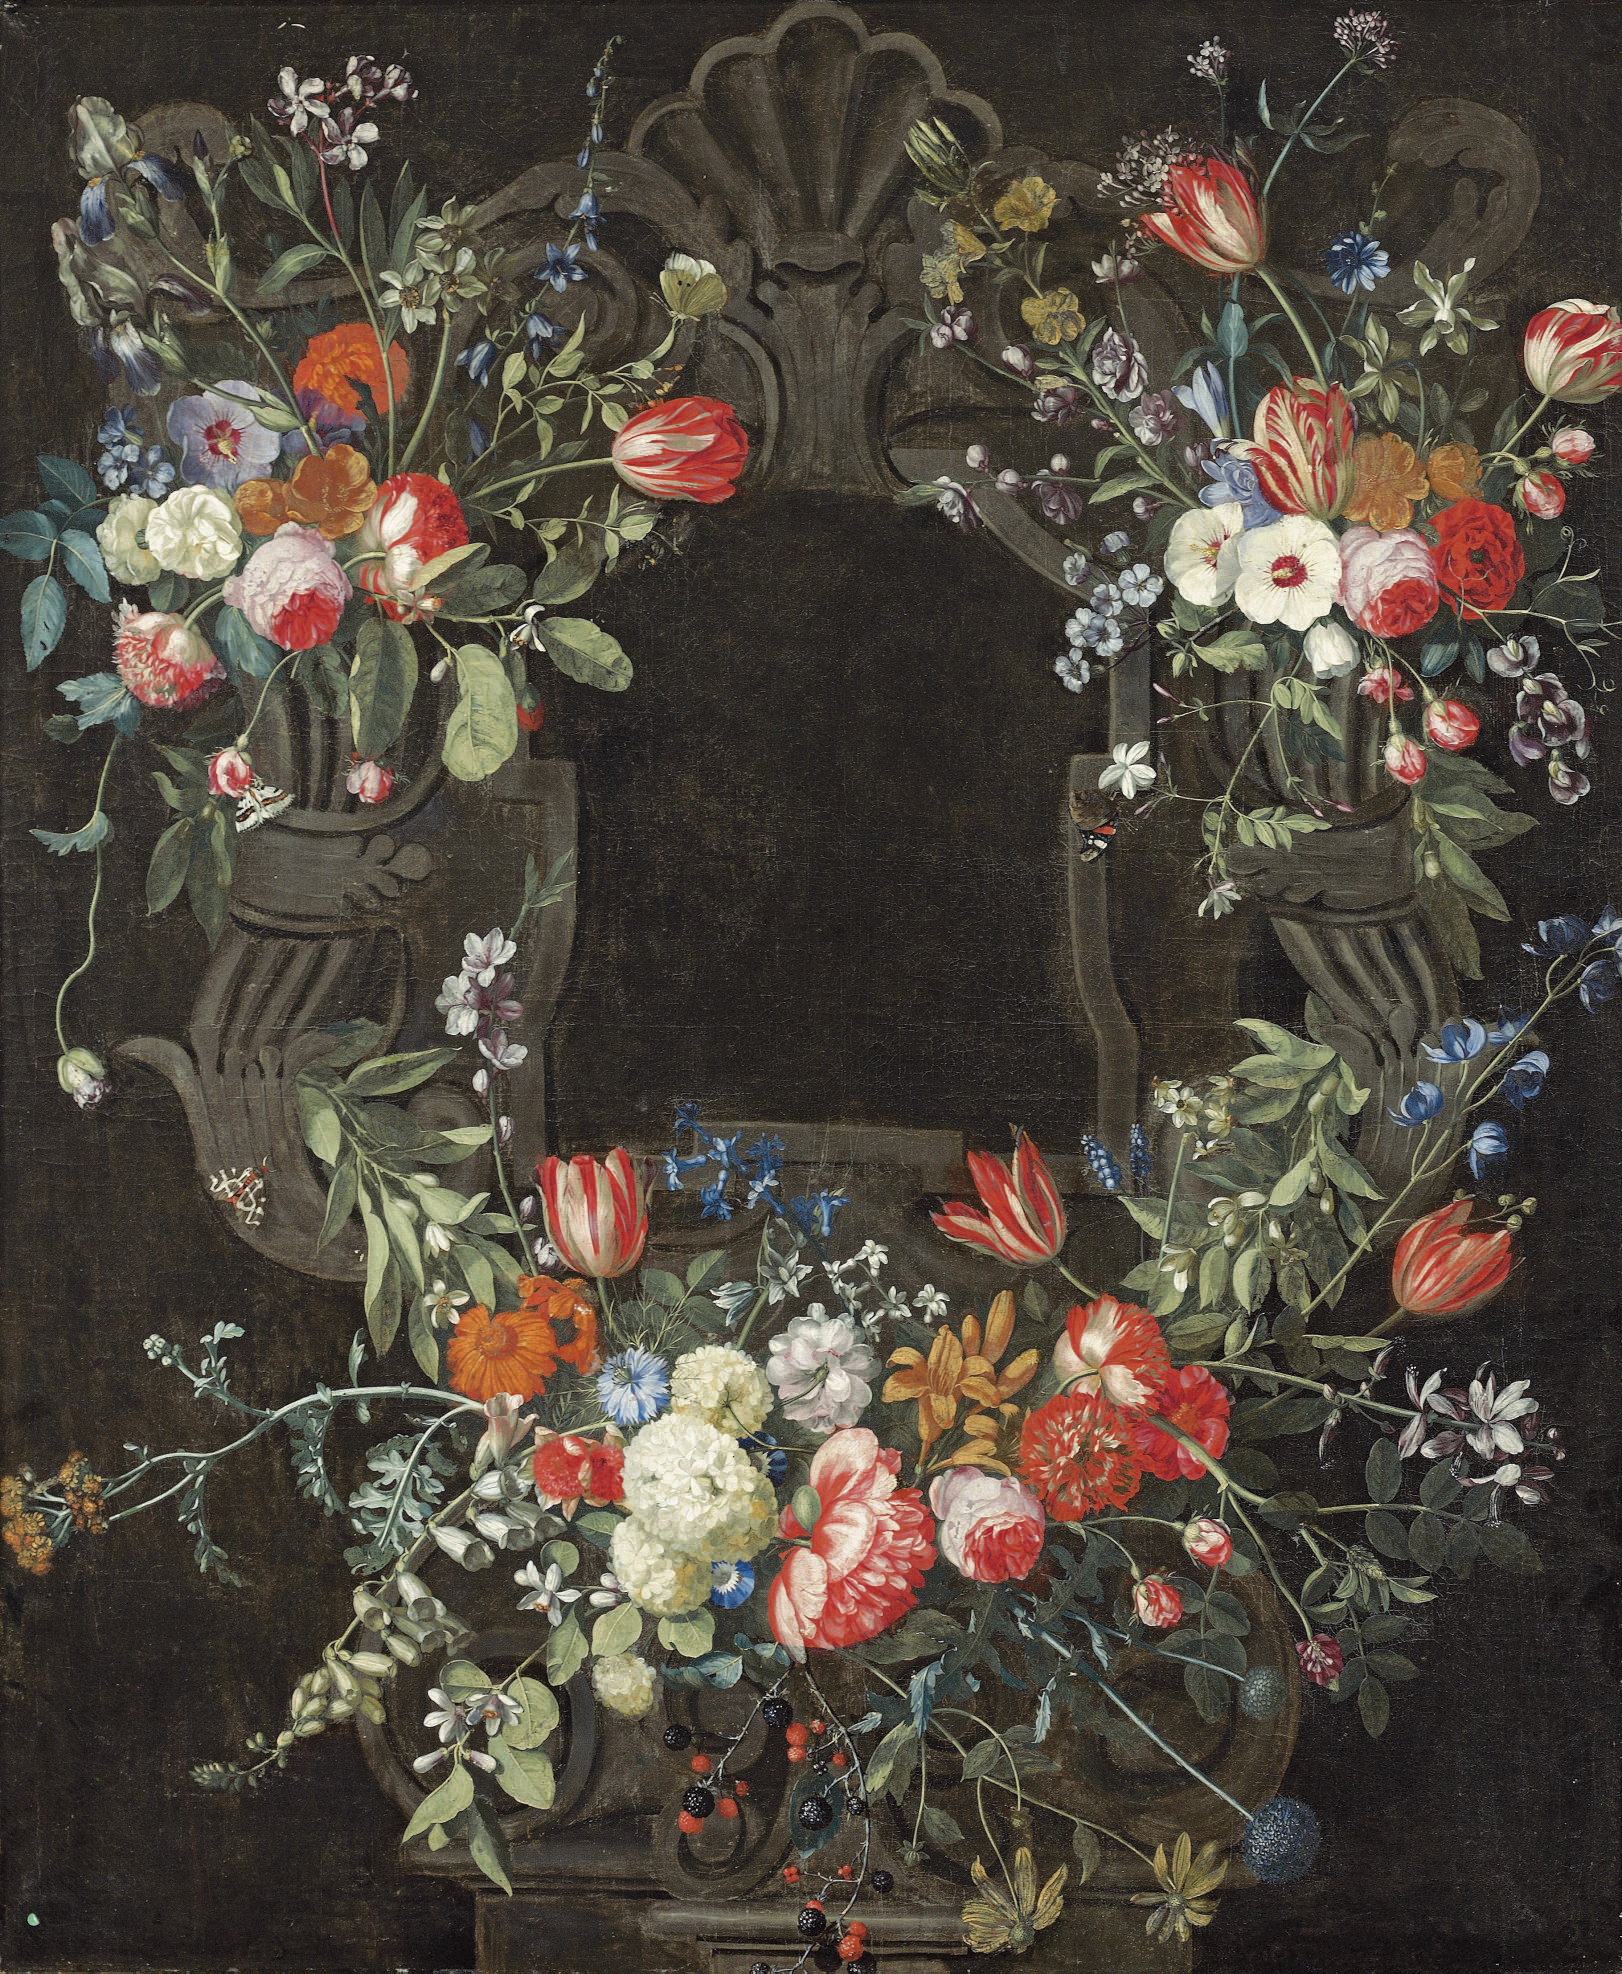 A garland of snowballs, roses, tulips, irises, lilies, daffodils and other flowers decorating a sculpted niche, with butterflies